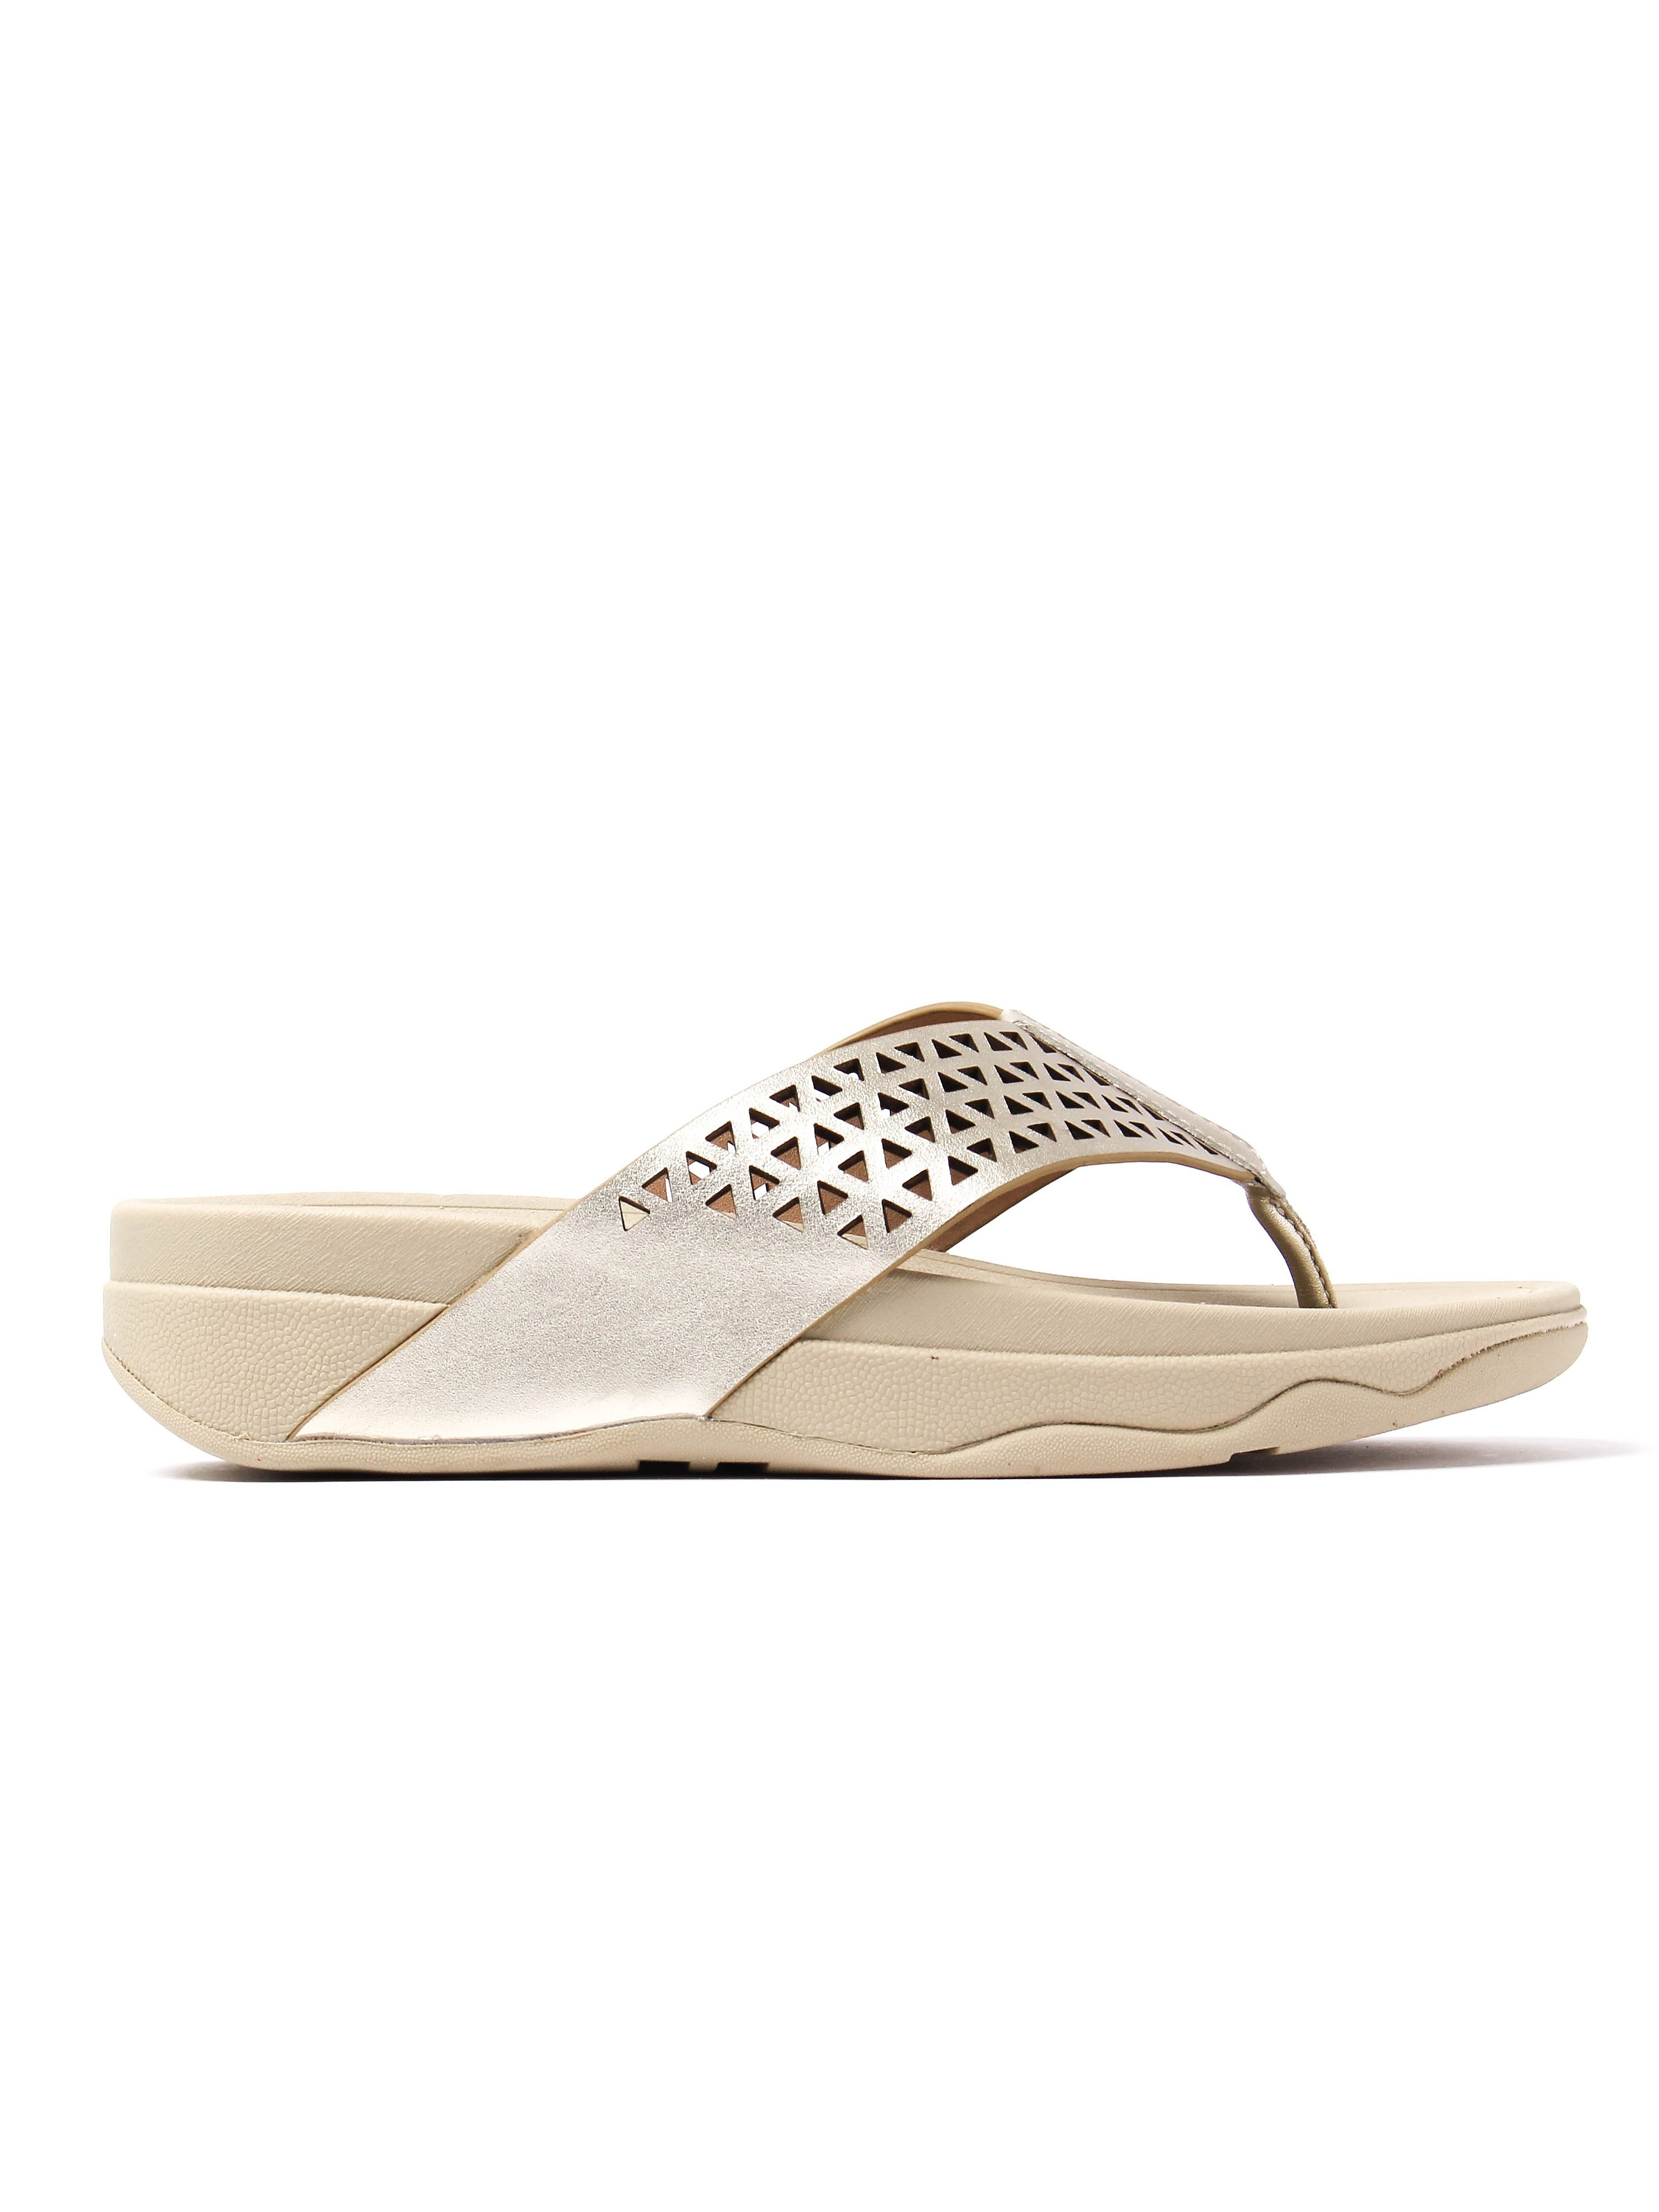 FitFlop Women's Lattice Surfa Sandals - Pale Gold Leather